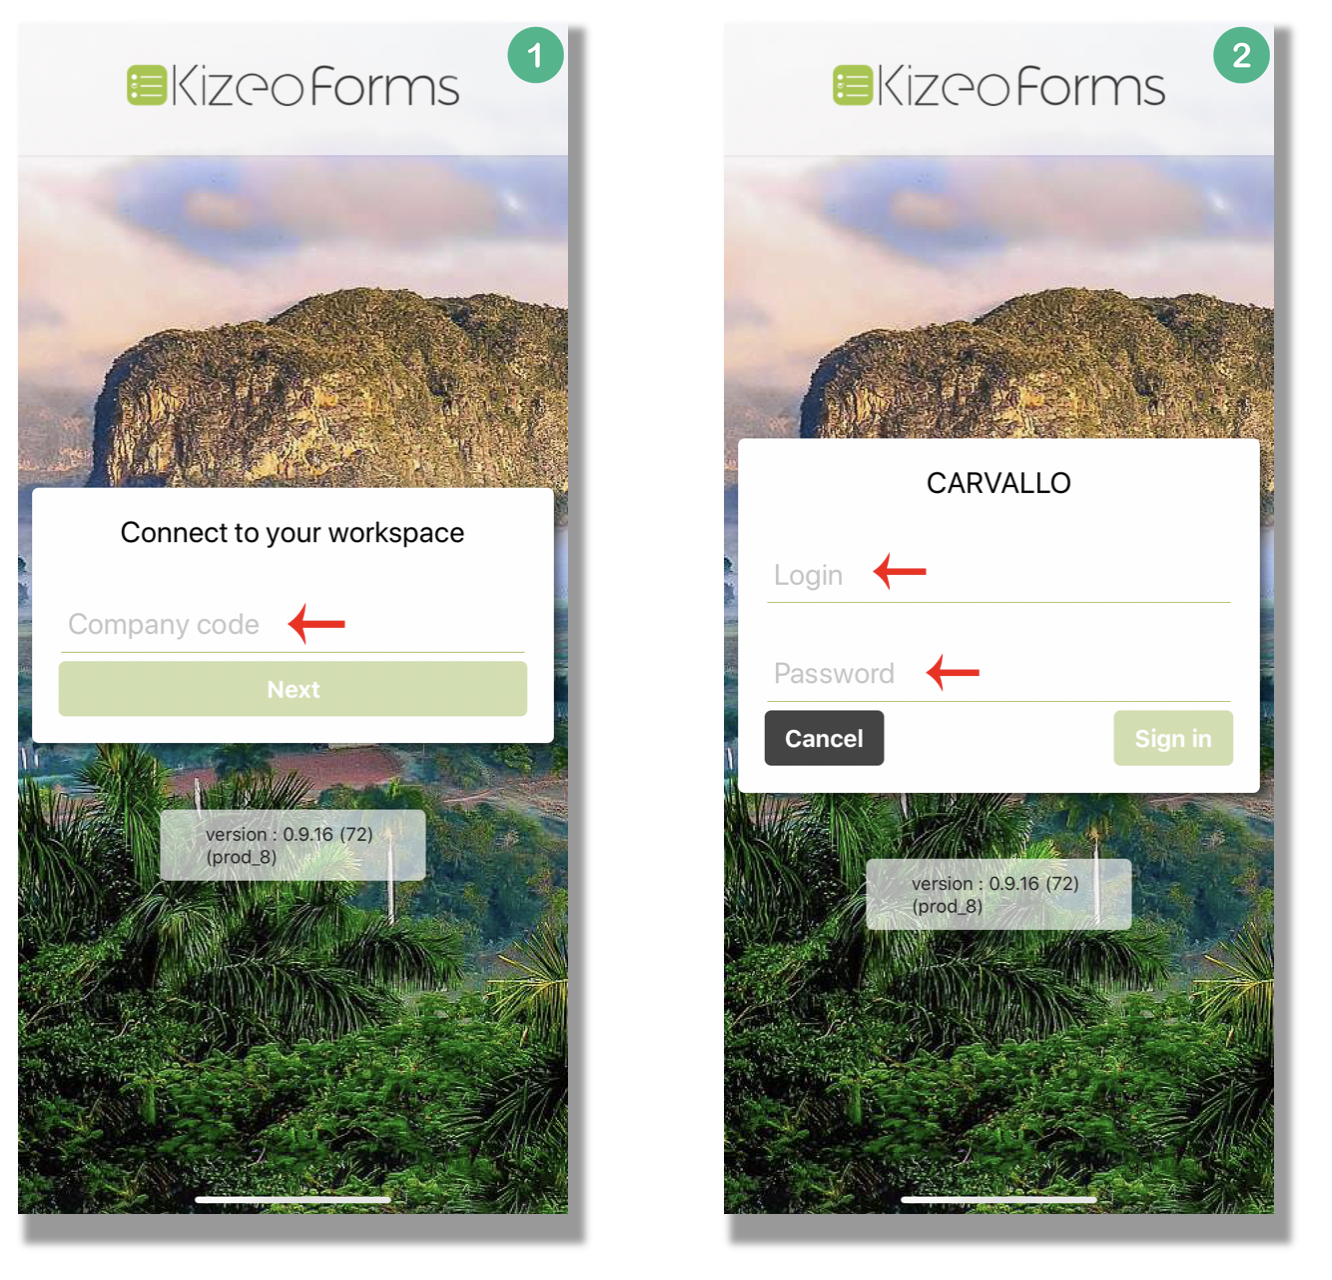 Log in Kizeo Forms.